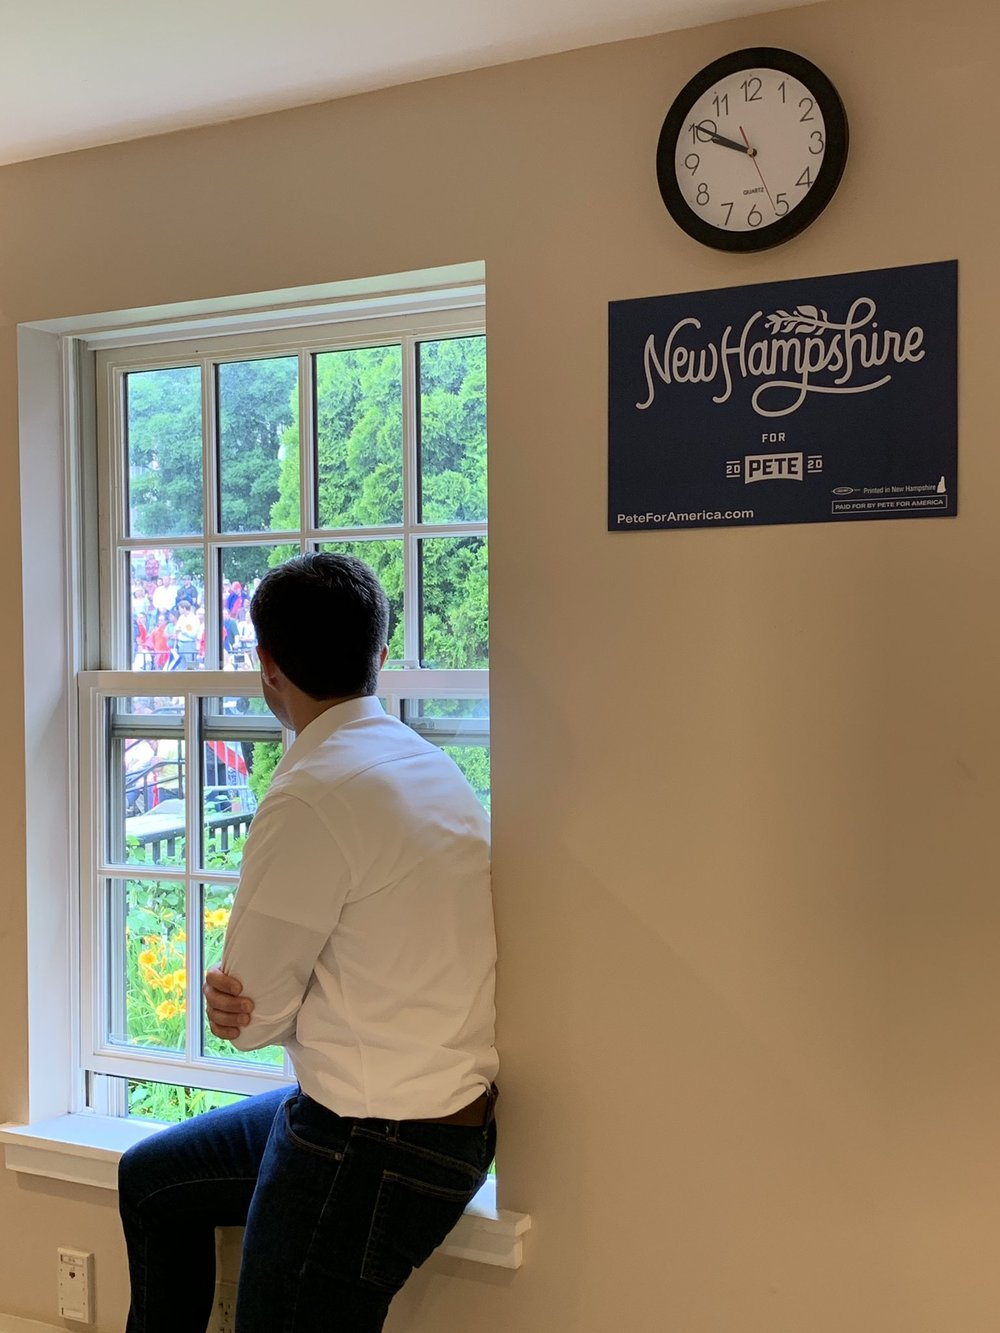 Waiting to speak, New Hampshire, Jul 13, 2019 - photo posted on Twitter by Saralena Barry.